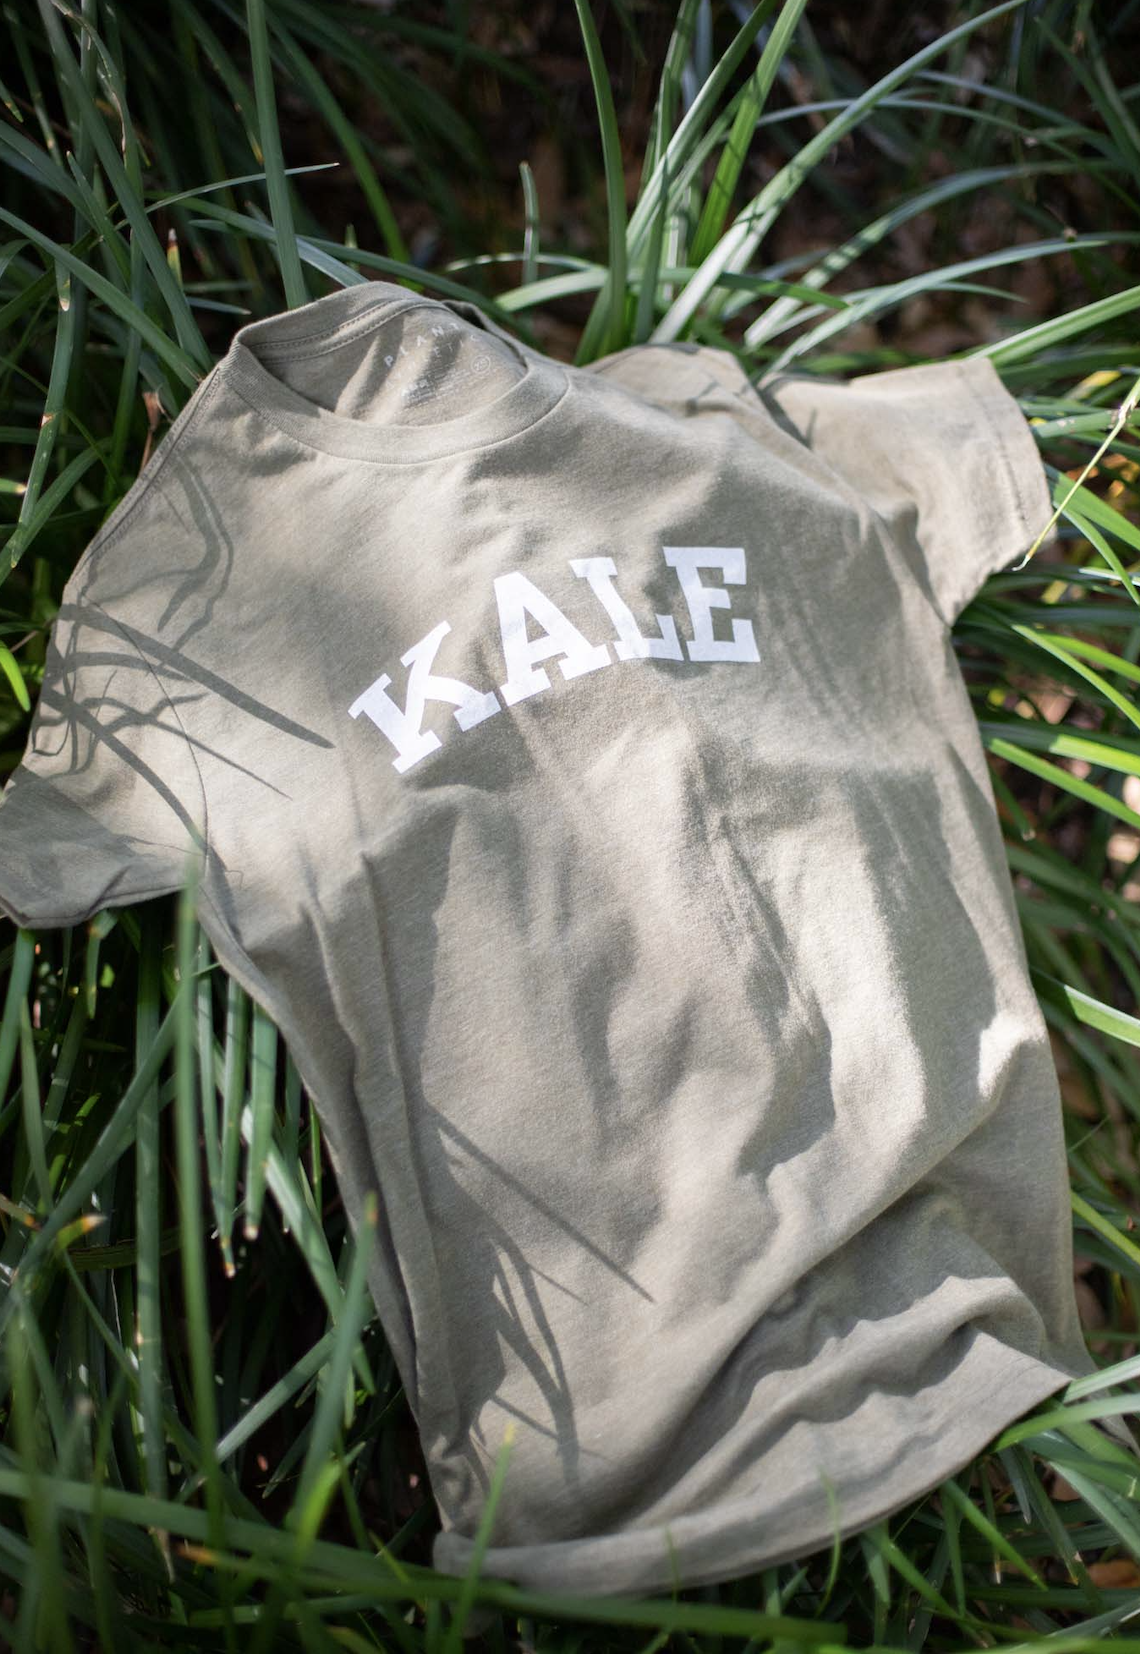 """A shirt that reads """"kale"""" is laying artfully in the grass."""